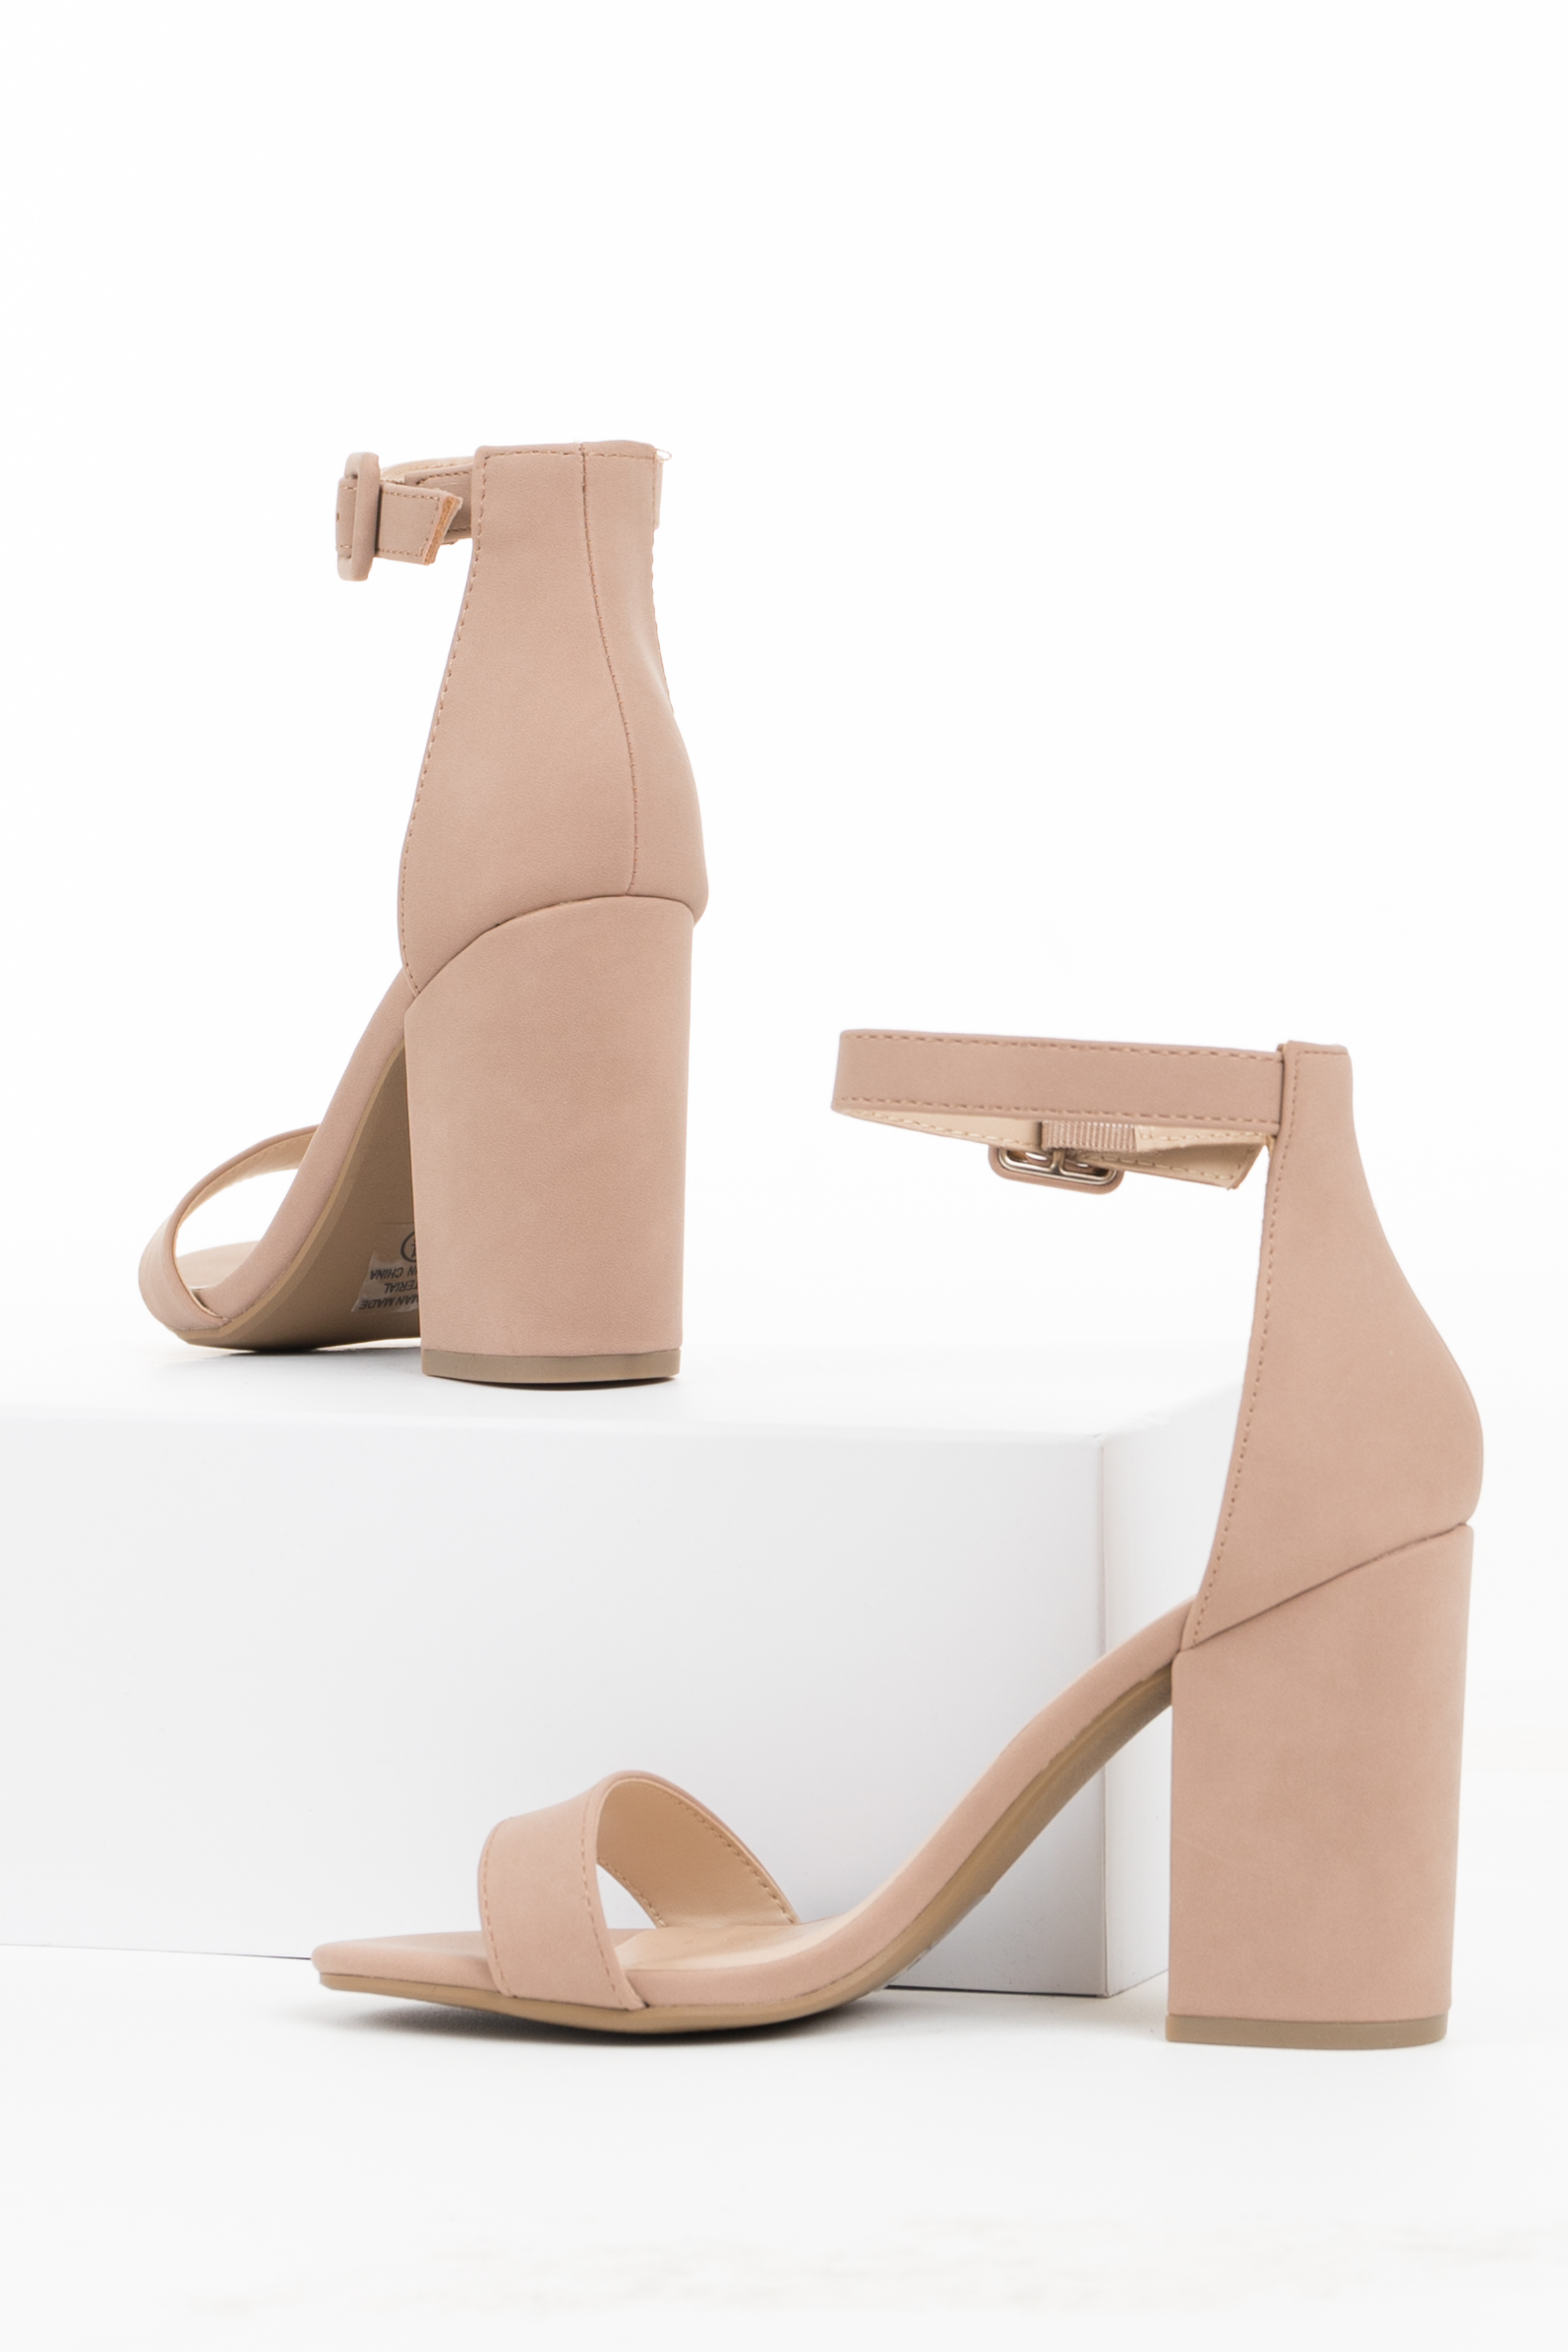 Rosy Taupe Heels with Toe and Ankle Straps